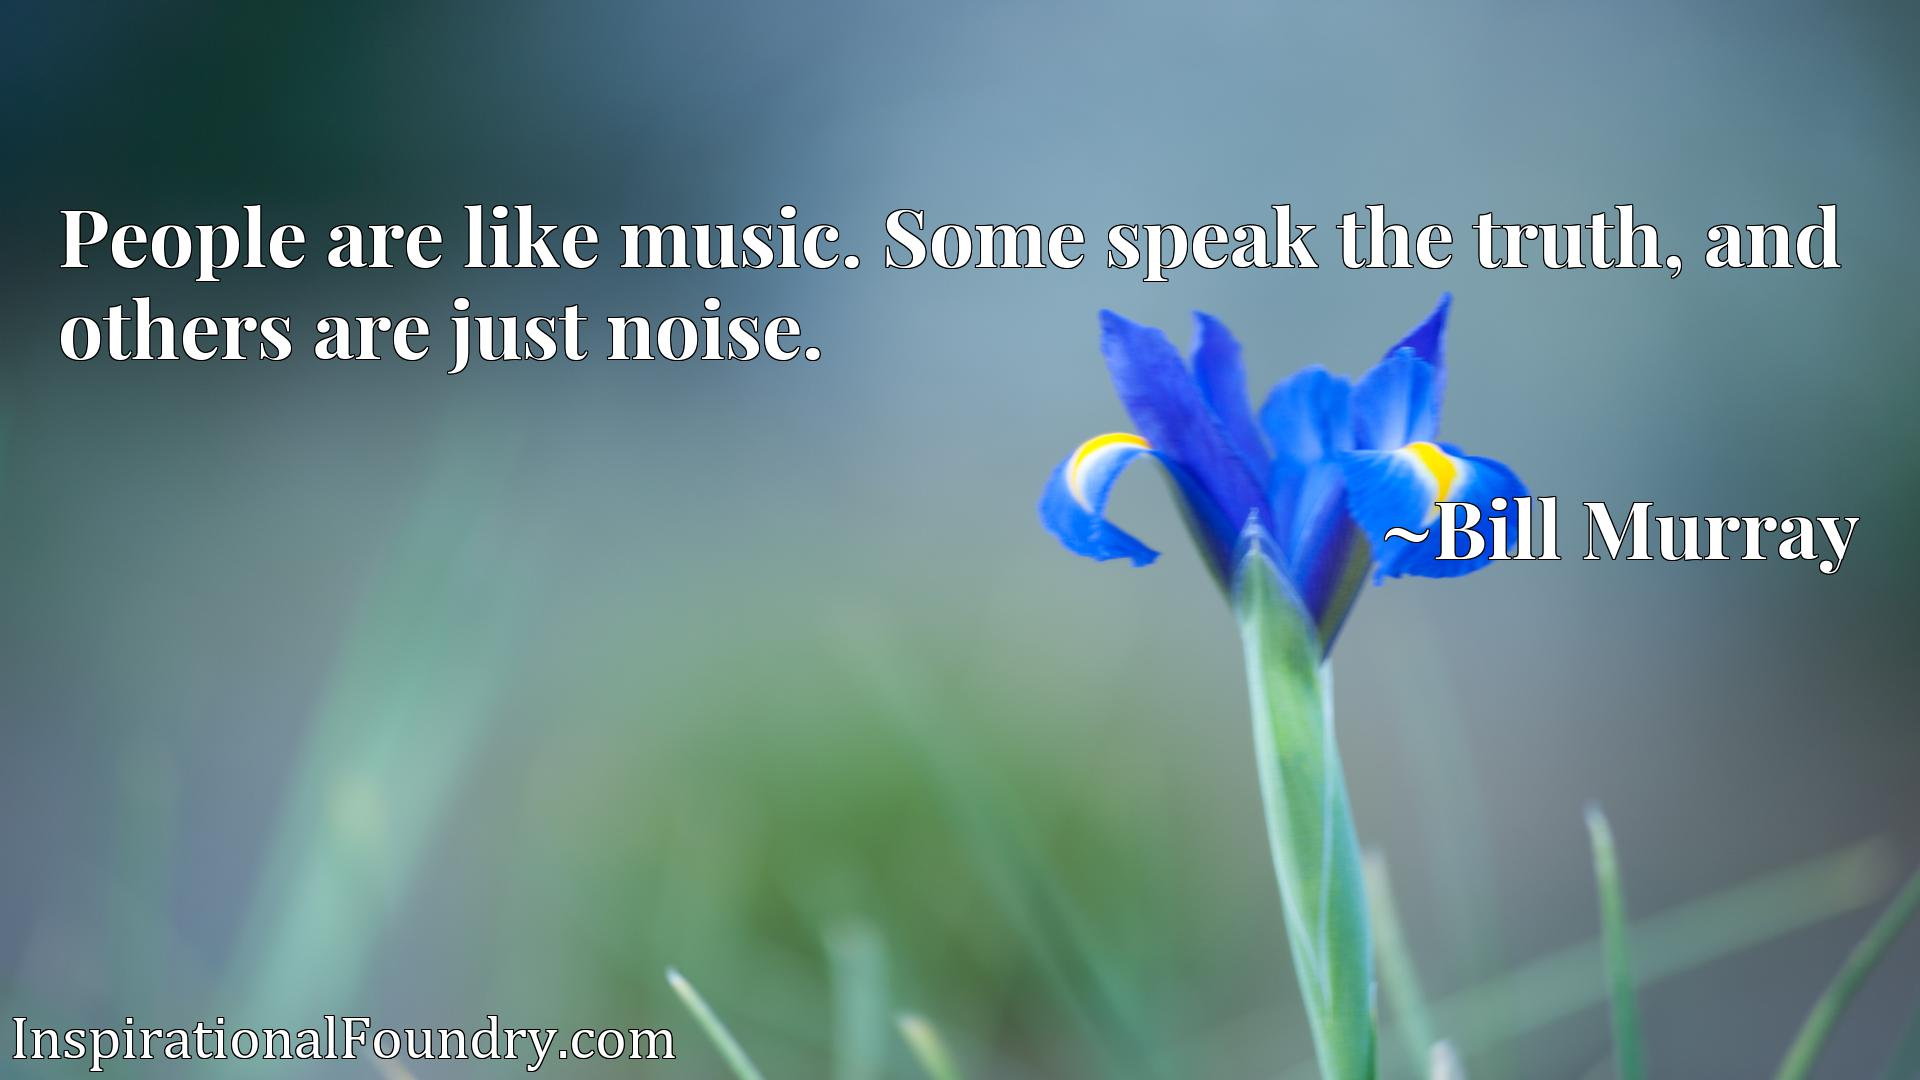 People are like music. Some speak the truth, and others are just noise.